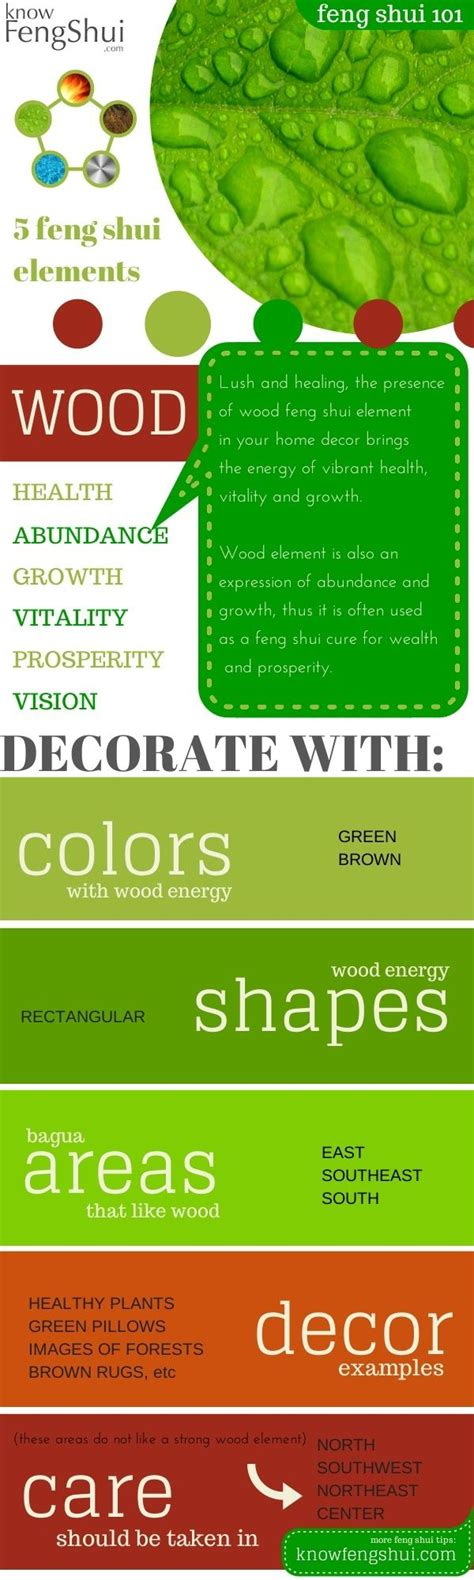 feng shui decorating 25 best ideas about feng shui decorating on pinterest